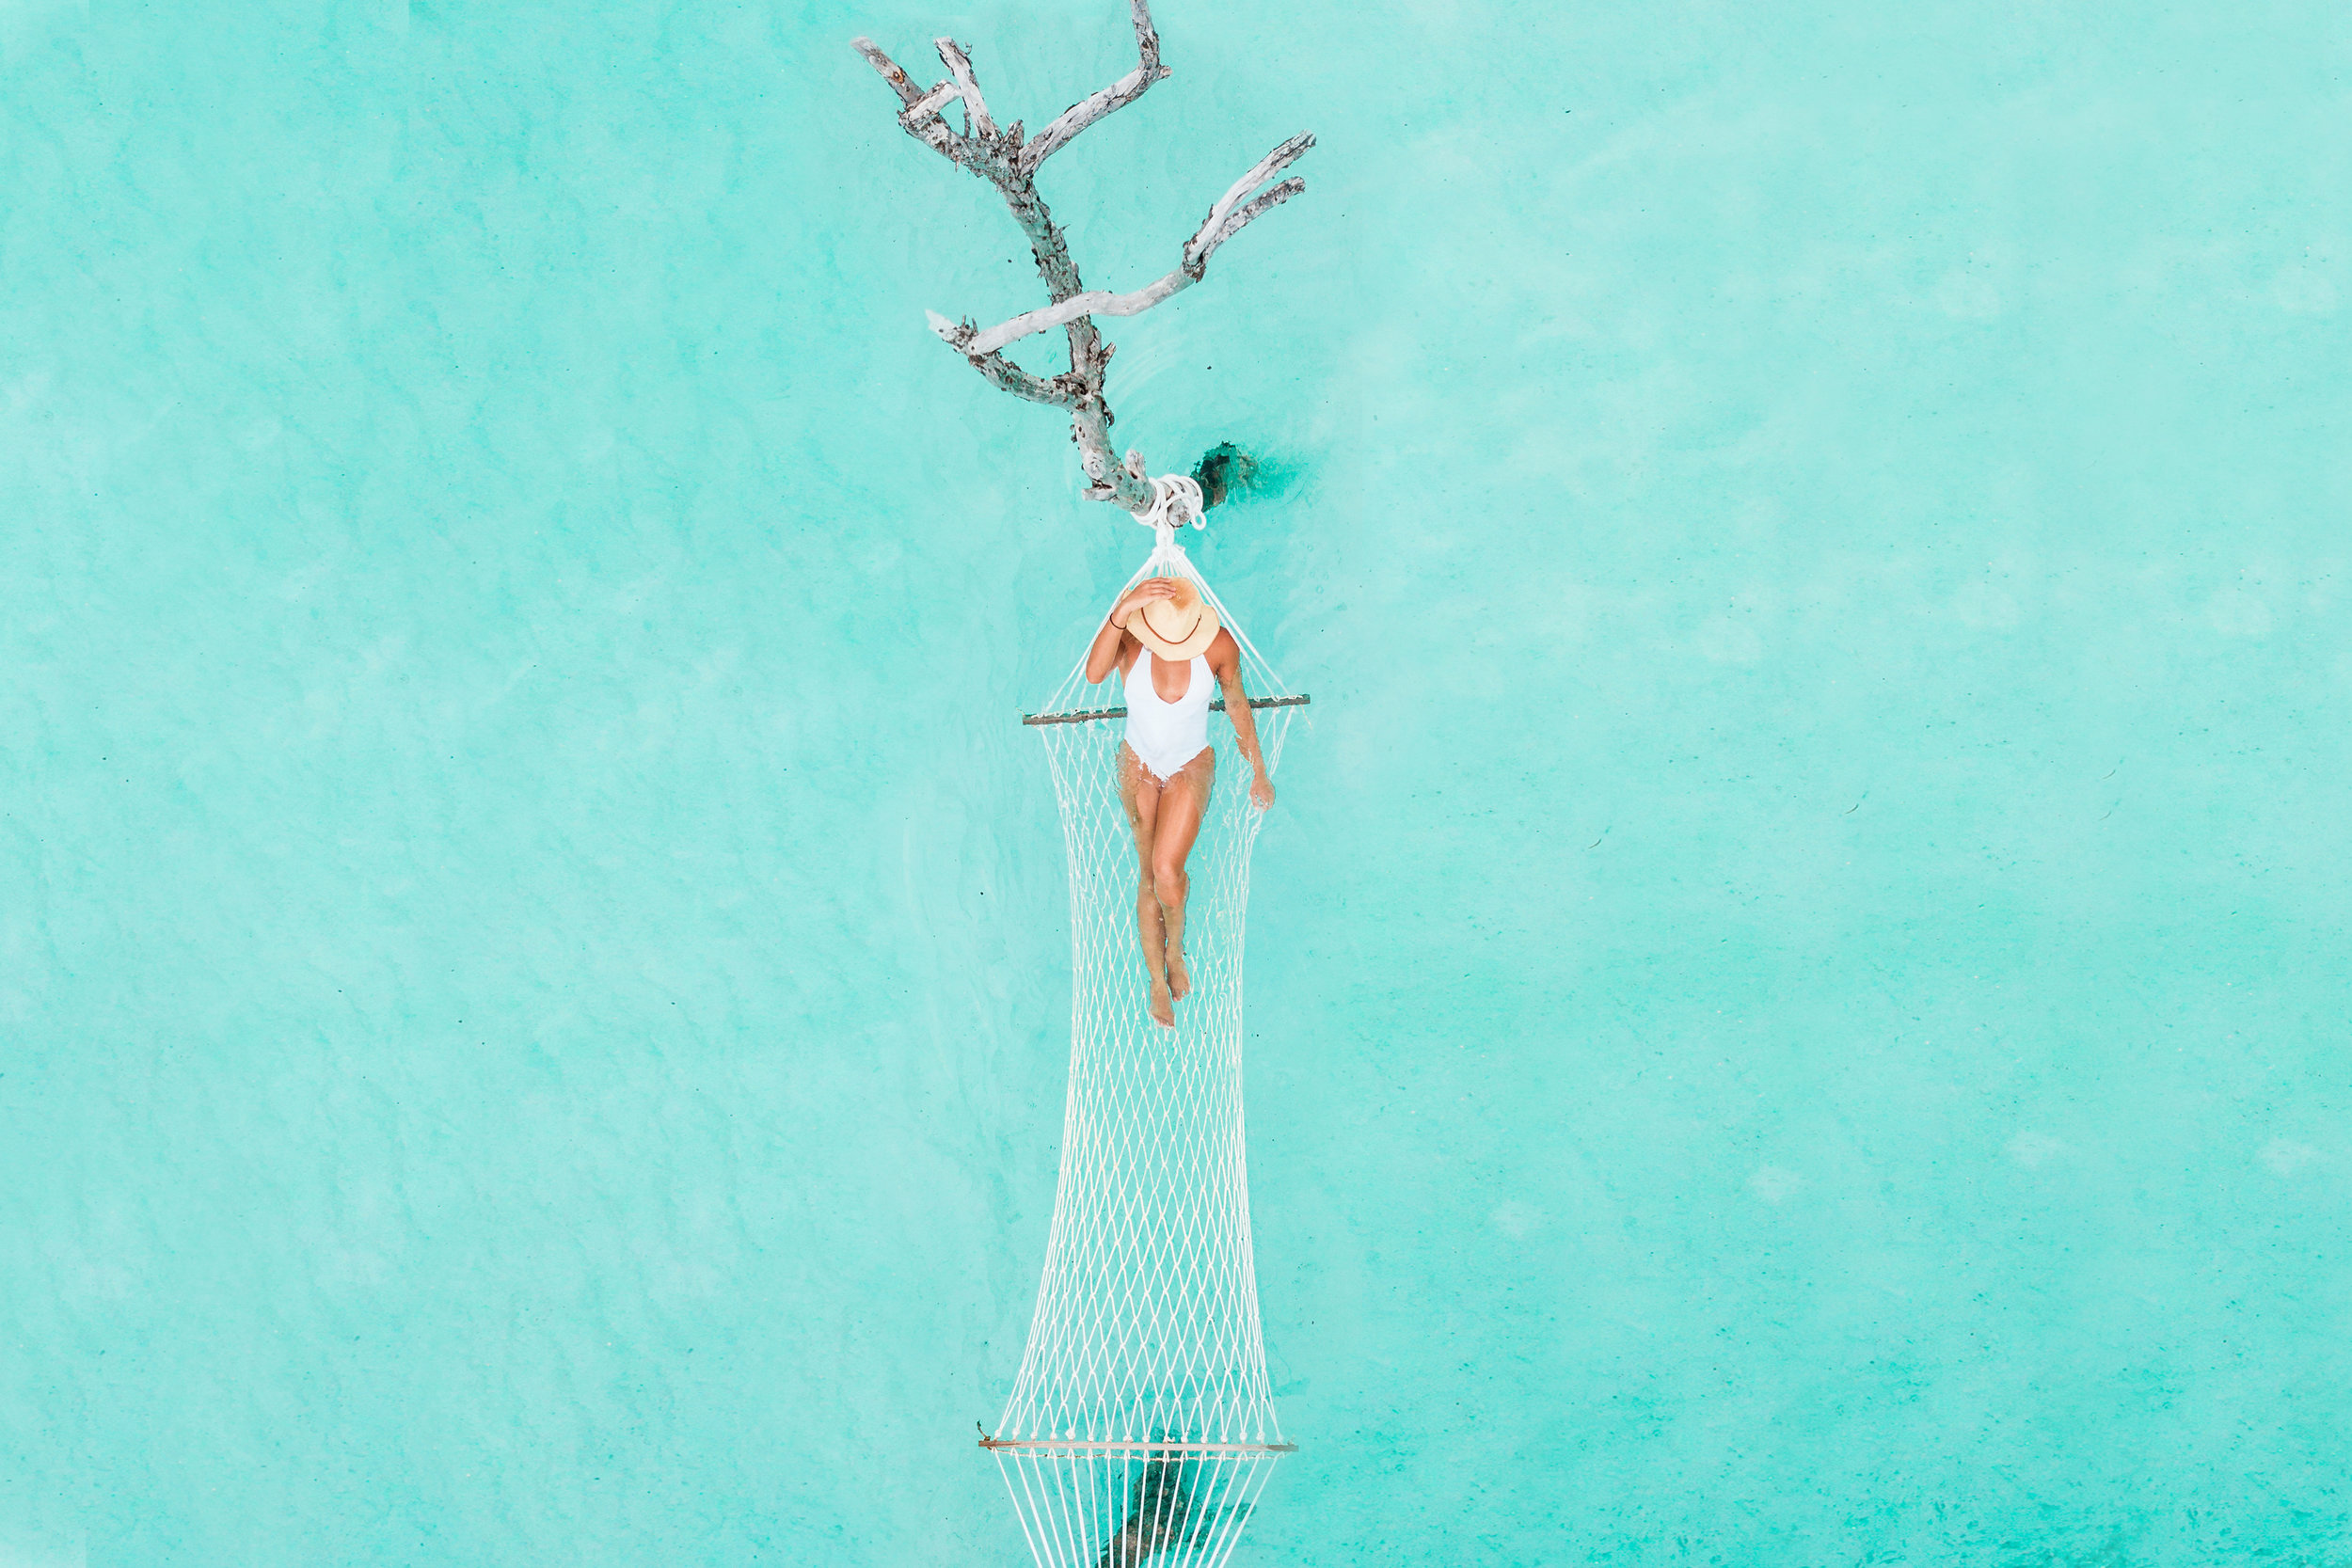 Sheena maldives hammock for slideshow carousel.jpg